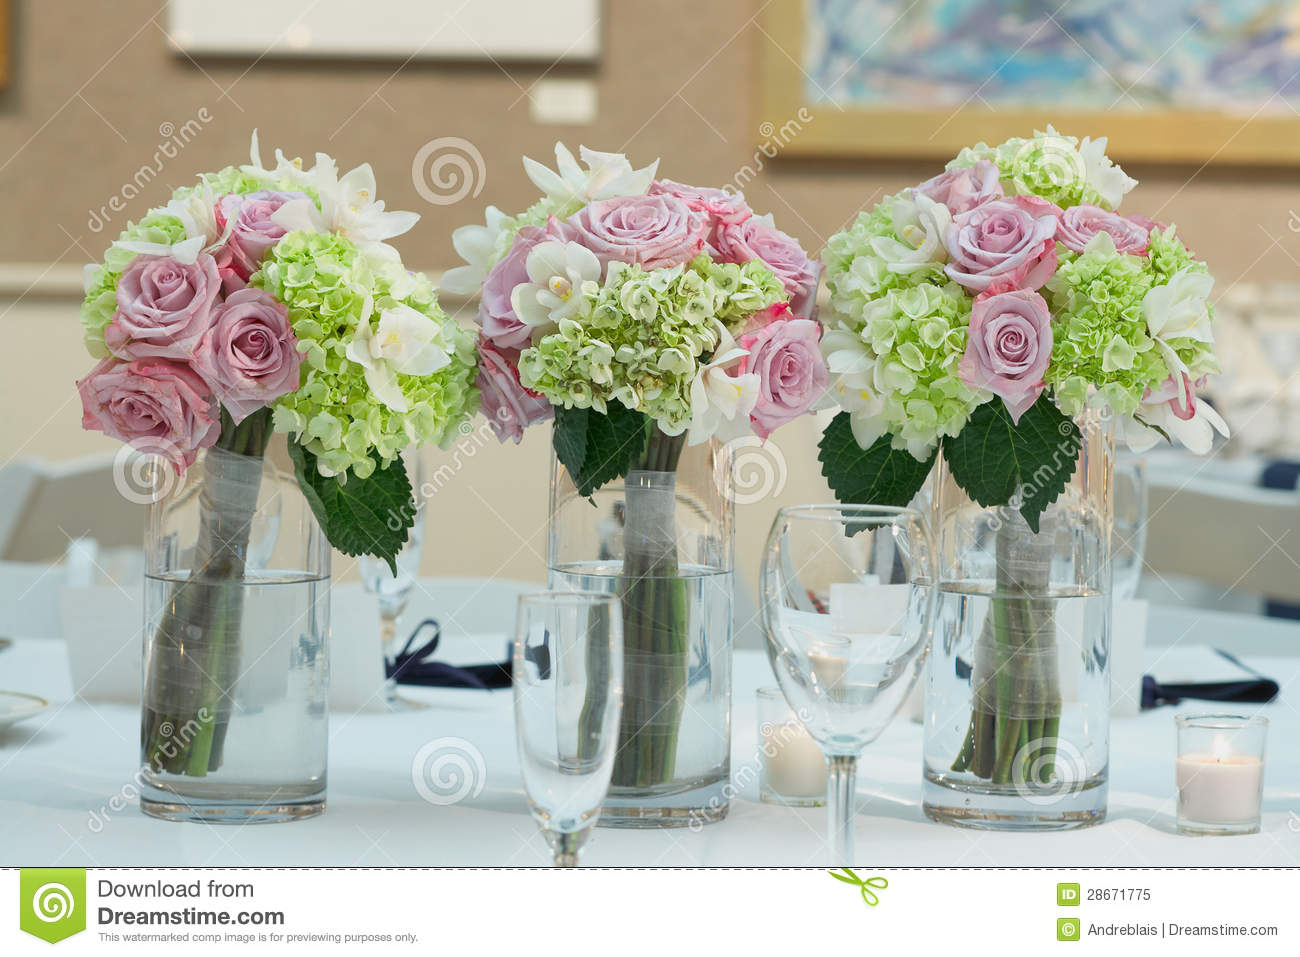 Formal dinner party table - Wedding Bouquet Centerpieces Royalty Free Stock Photo Image